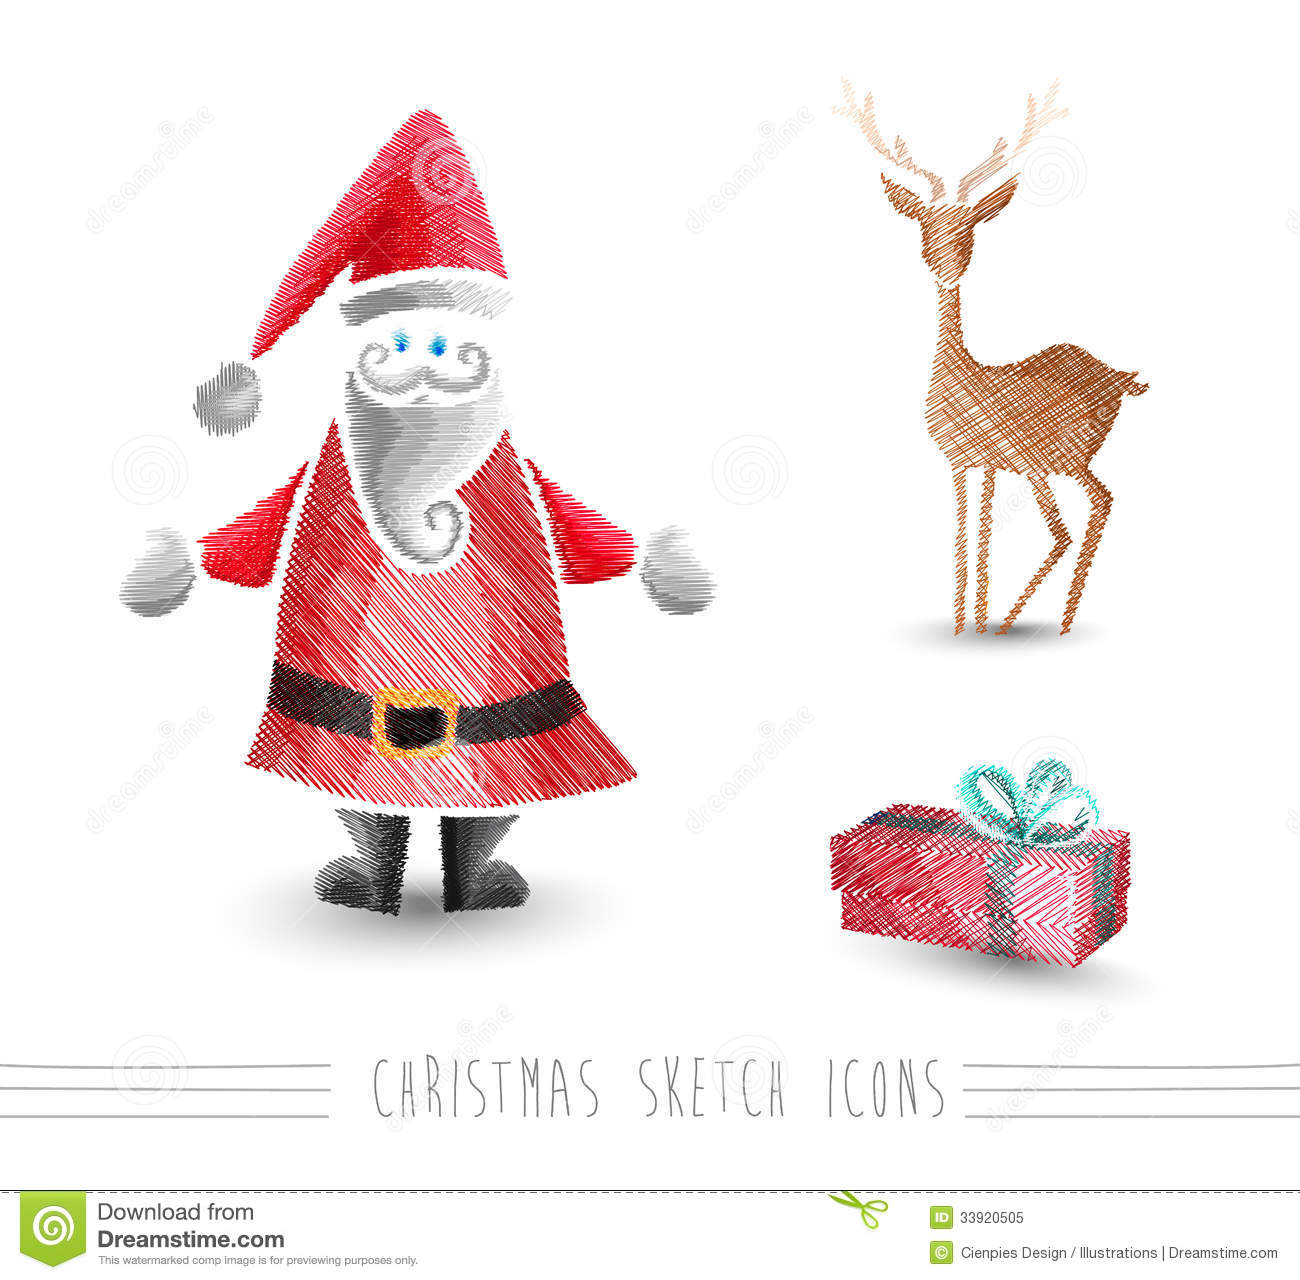 Merry Christmas Sketch Style Elements Set EPS10 File. Stock Vector - Image 33920505